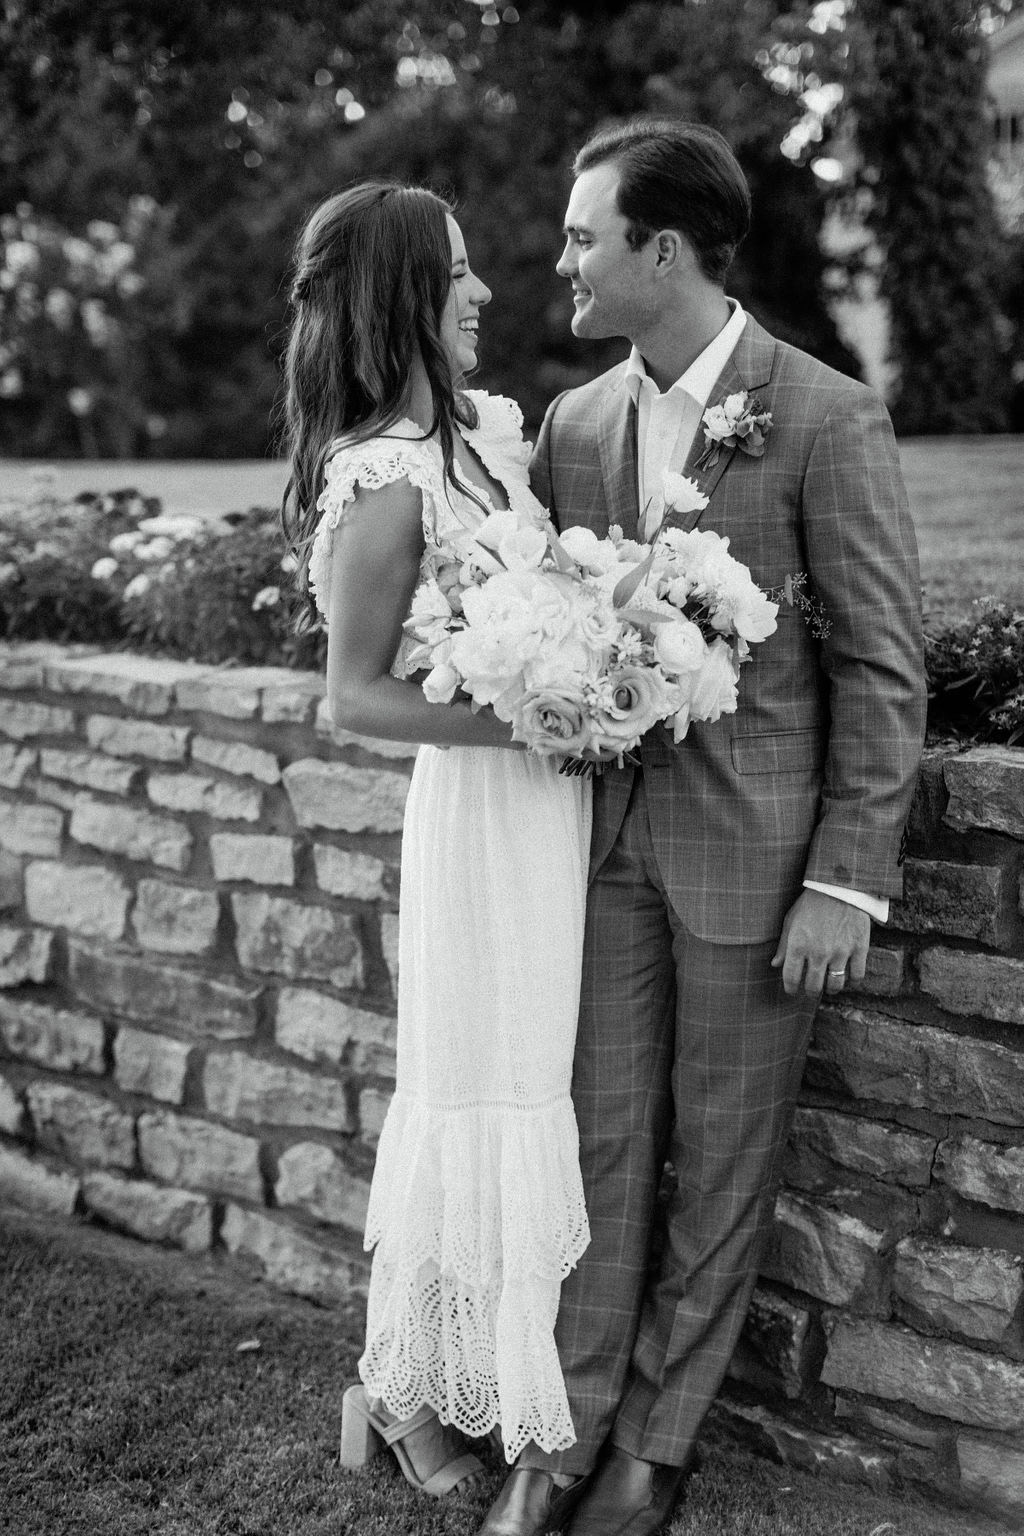 bride and groom leaning on stone wall outside smiling at each other